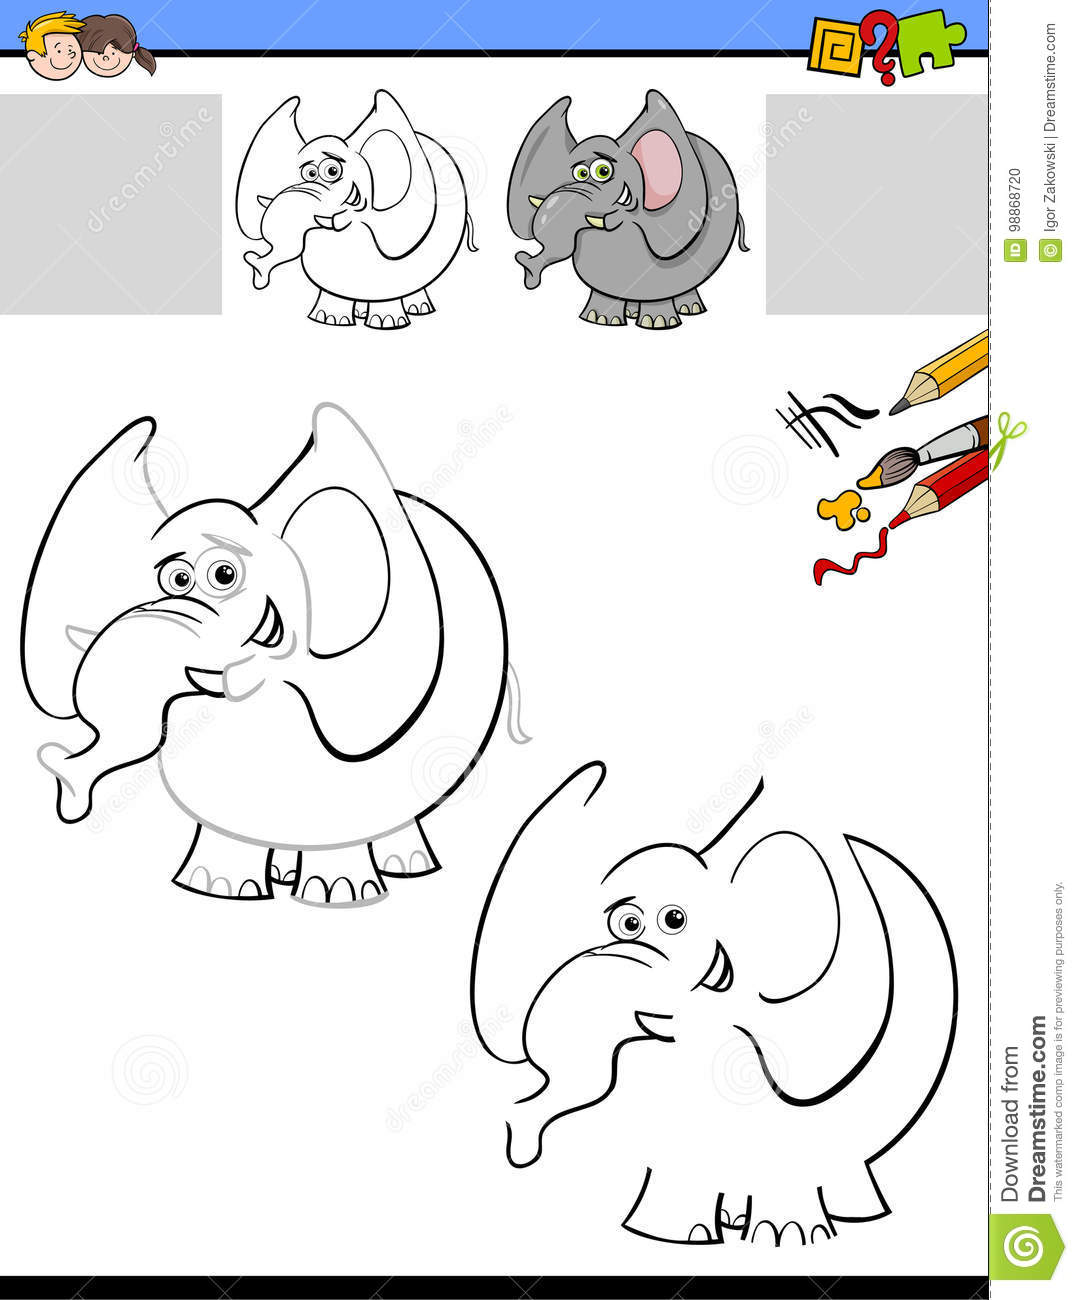 Drawing And Coloring Worksheet With Elephant Stock Vector